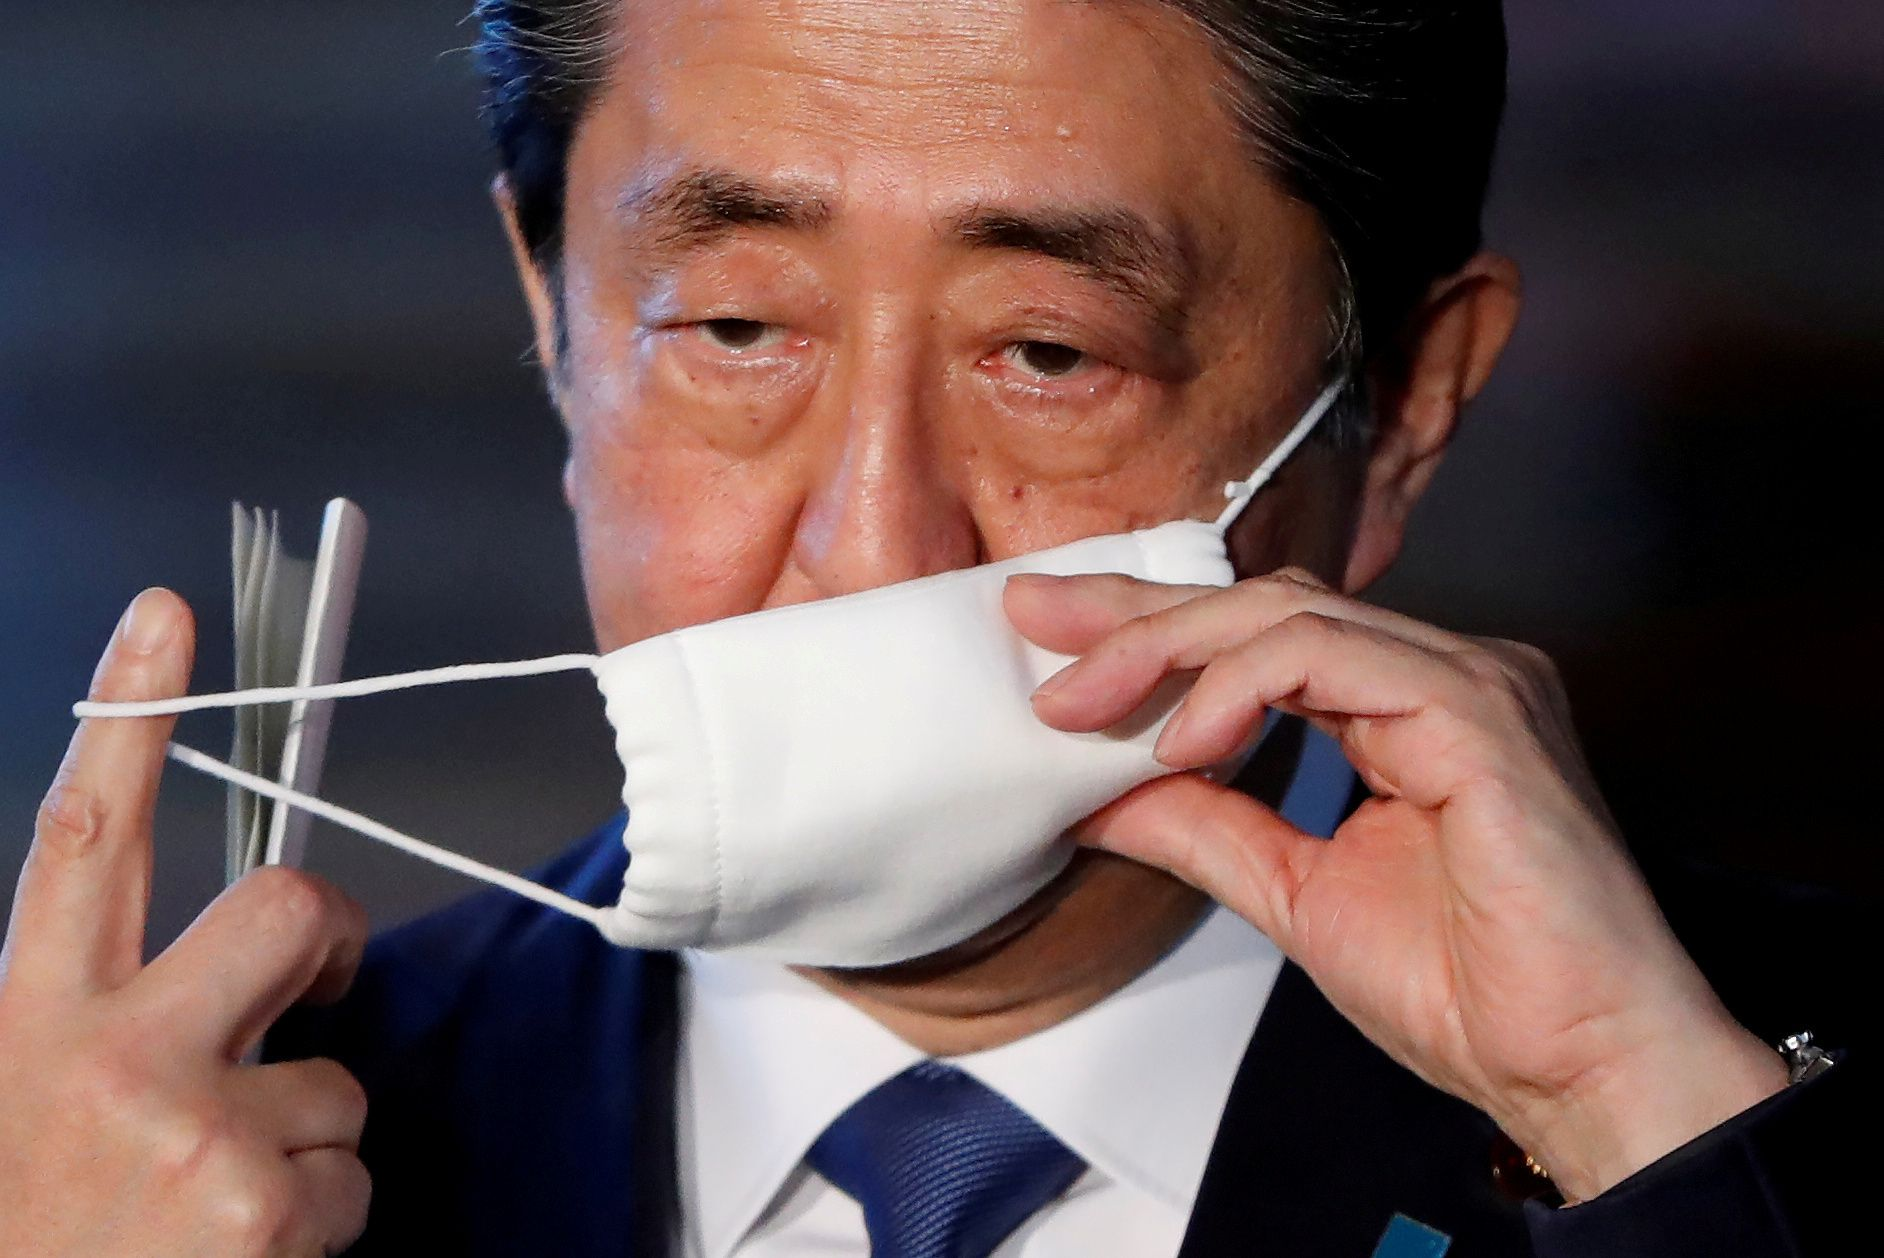 Coronavirus Politics Daily: Japan's PM clashes with Tokyo, China's beef with Australia, EU tries to reboot tourism